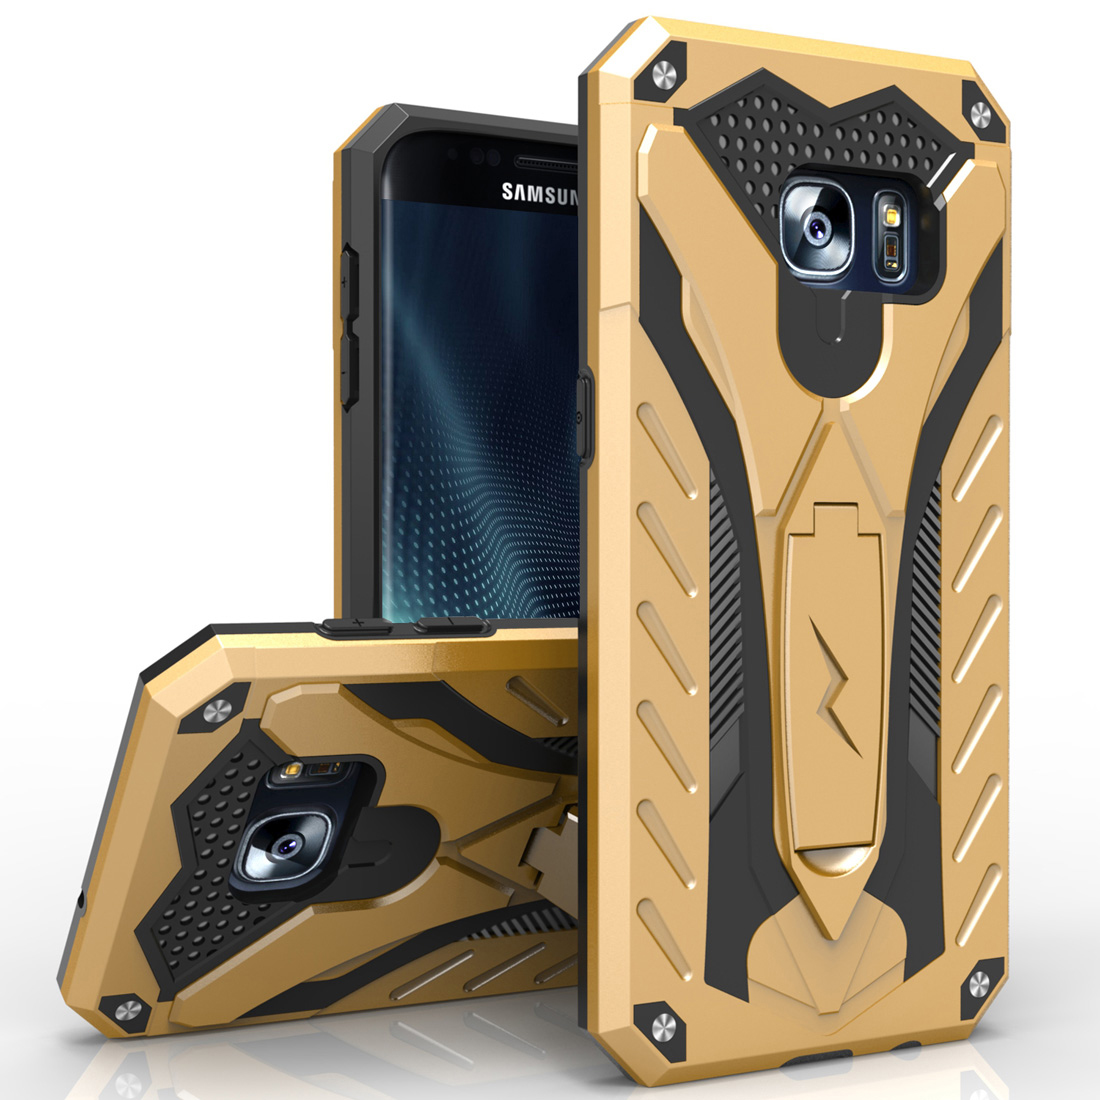 Samsung Galaxy S7 Edge Case, STATIC Dual Layer Hard Case TPU Hybrid [Military Grade] w/ Kickstand & Shock Absorption [Gold/ Black]